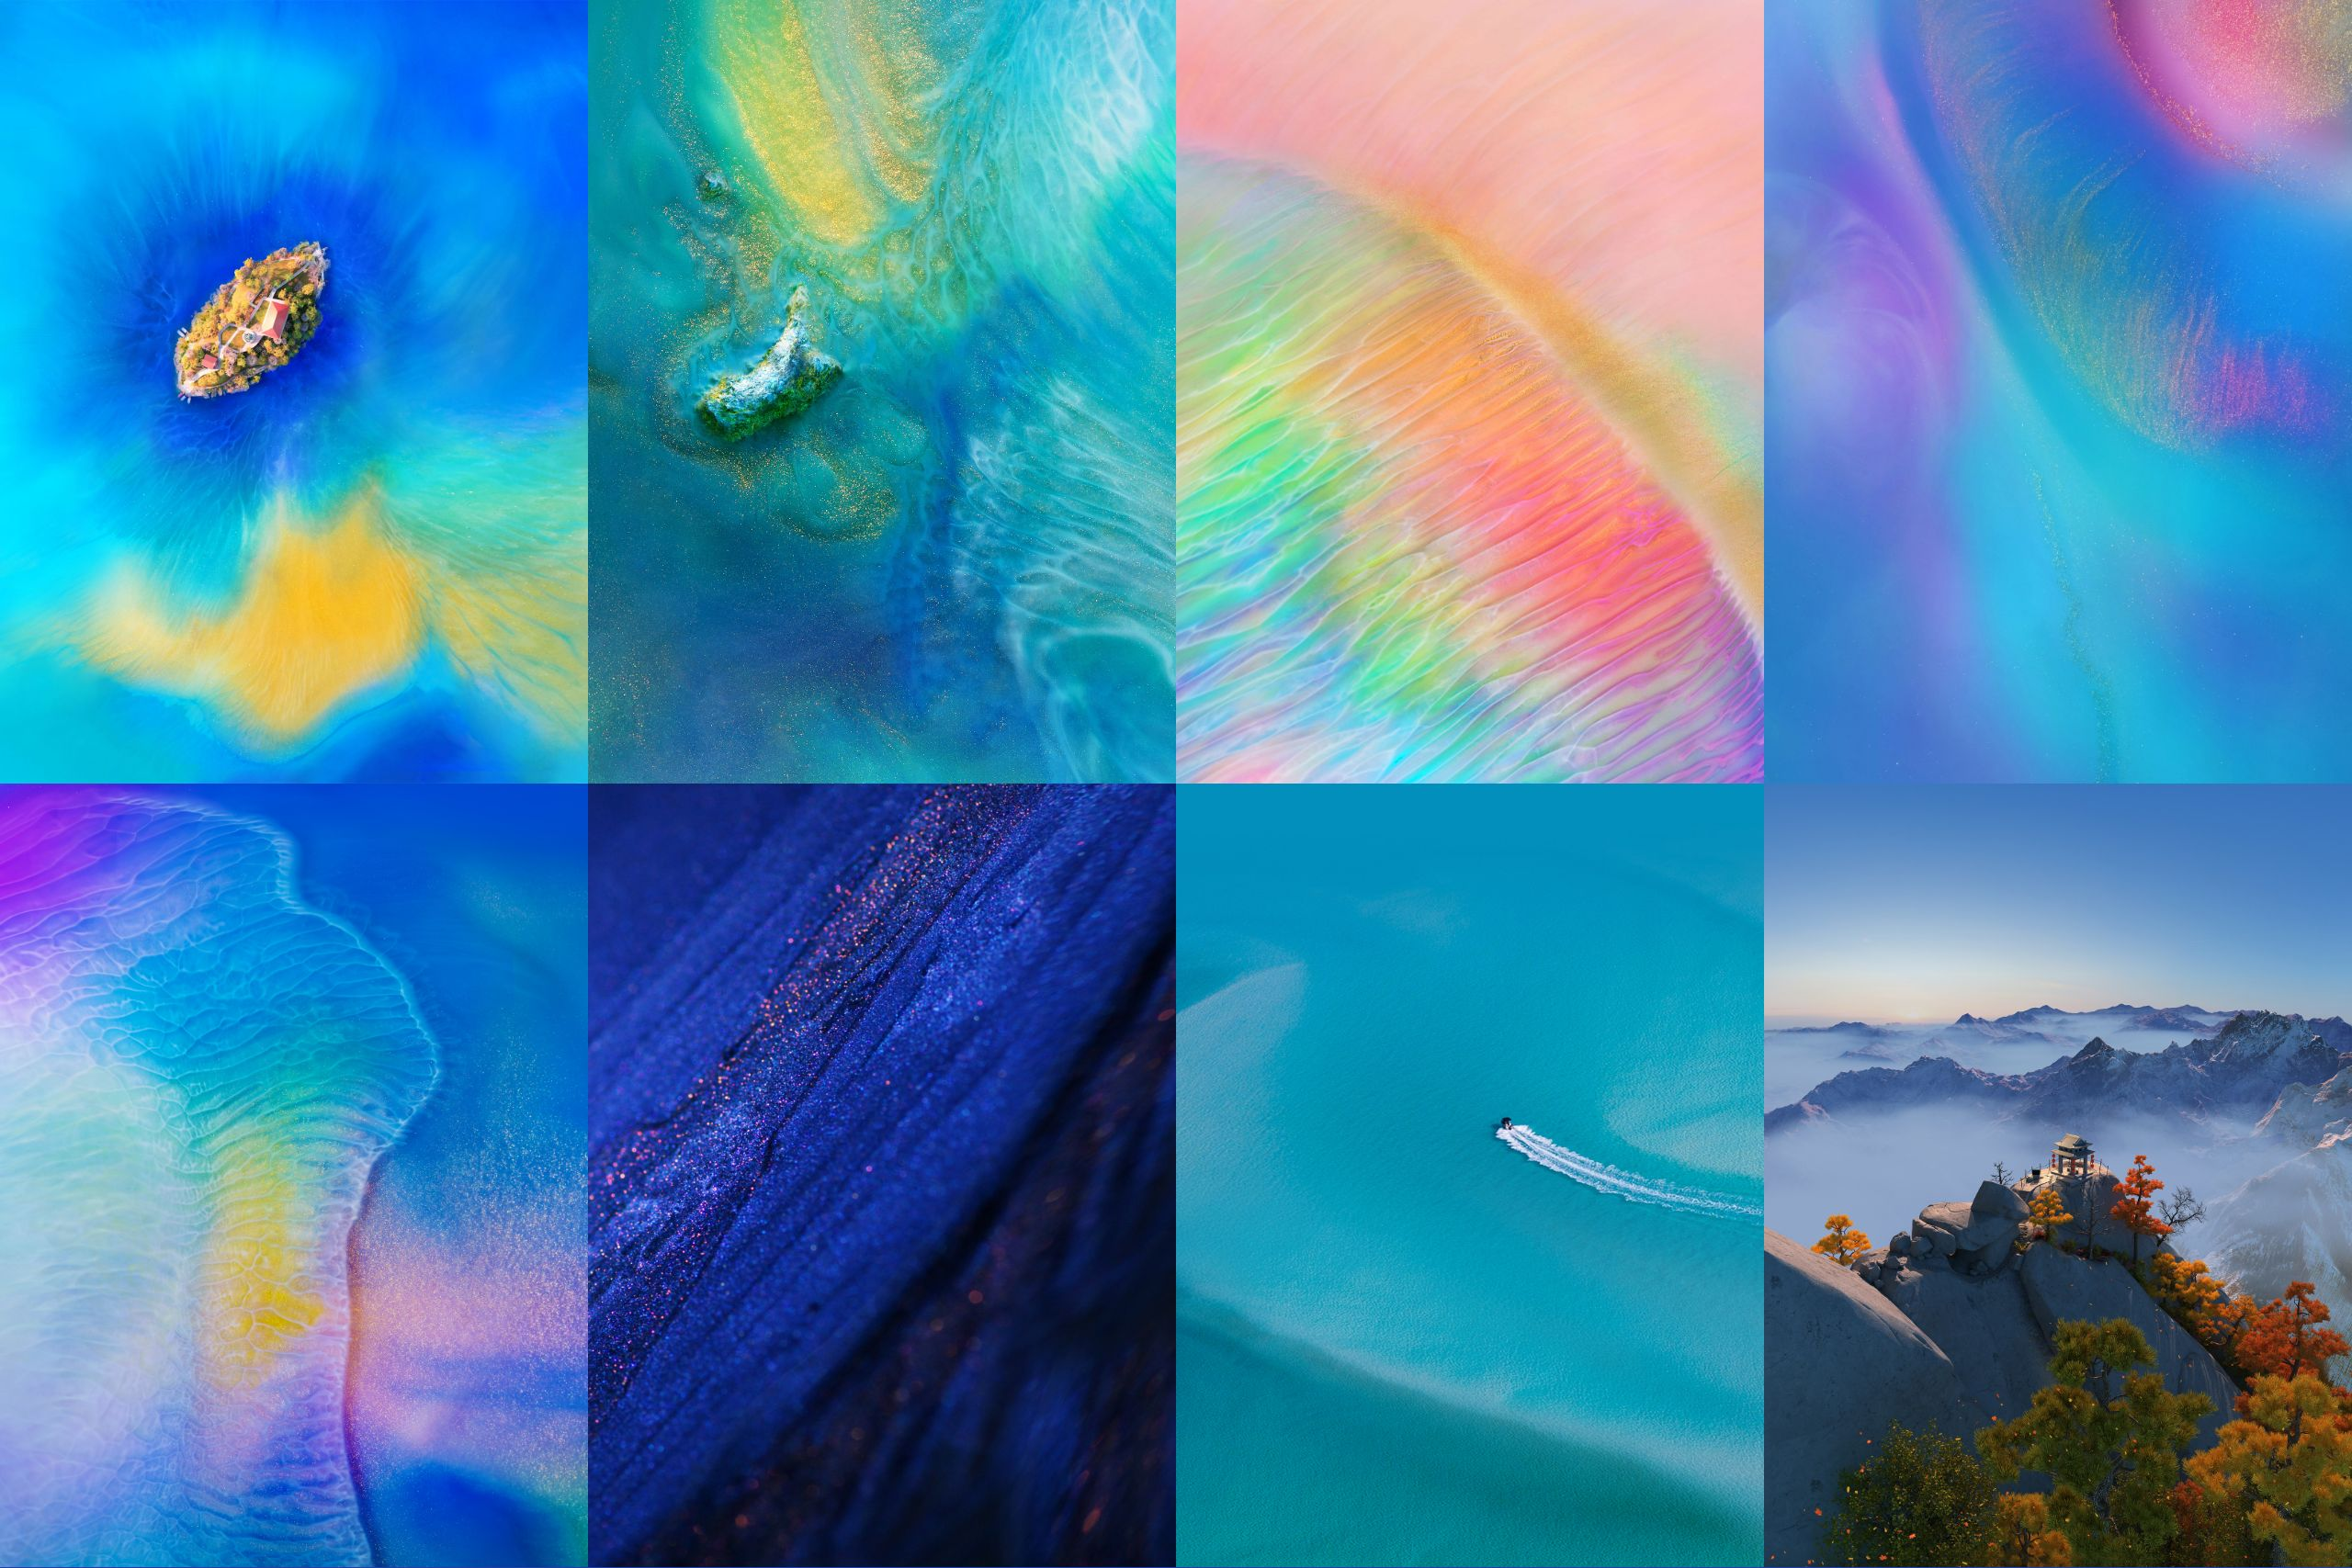 Huawei Mate 20 Pro Features and Stock Wallpaper Download boomtechin 2560x1707